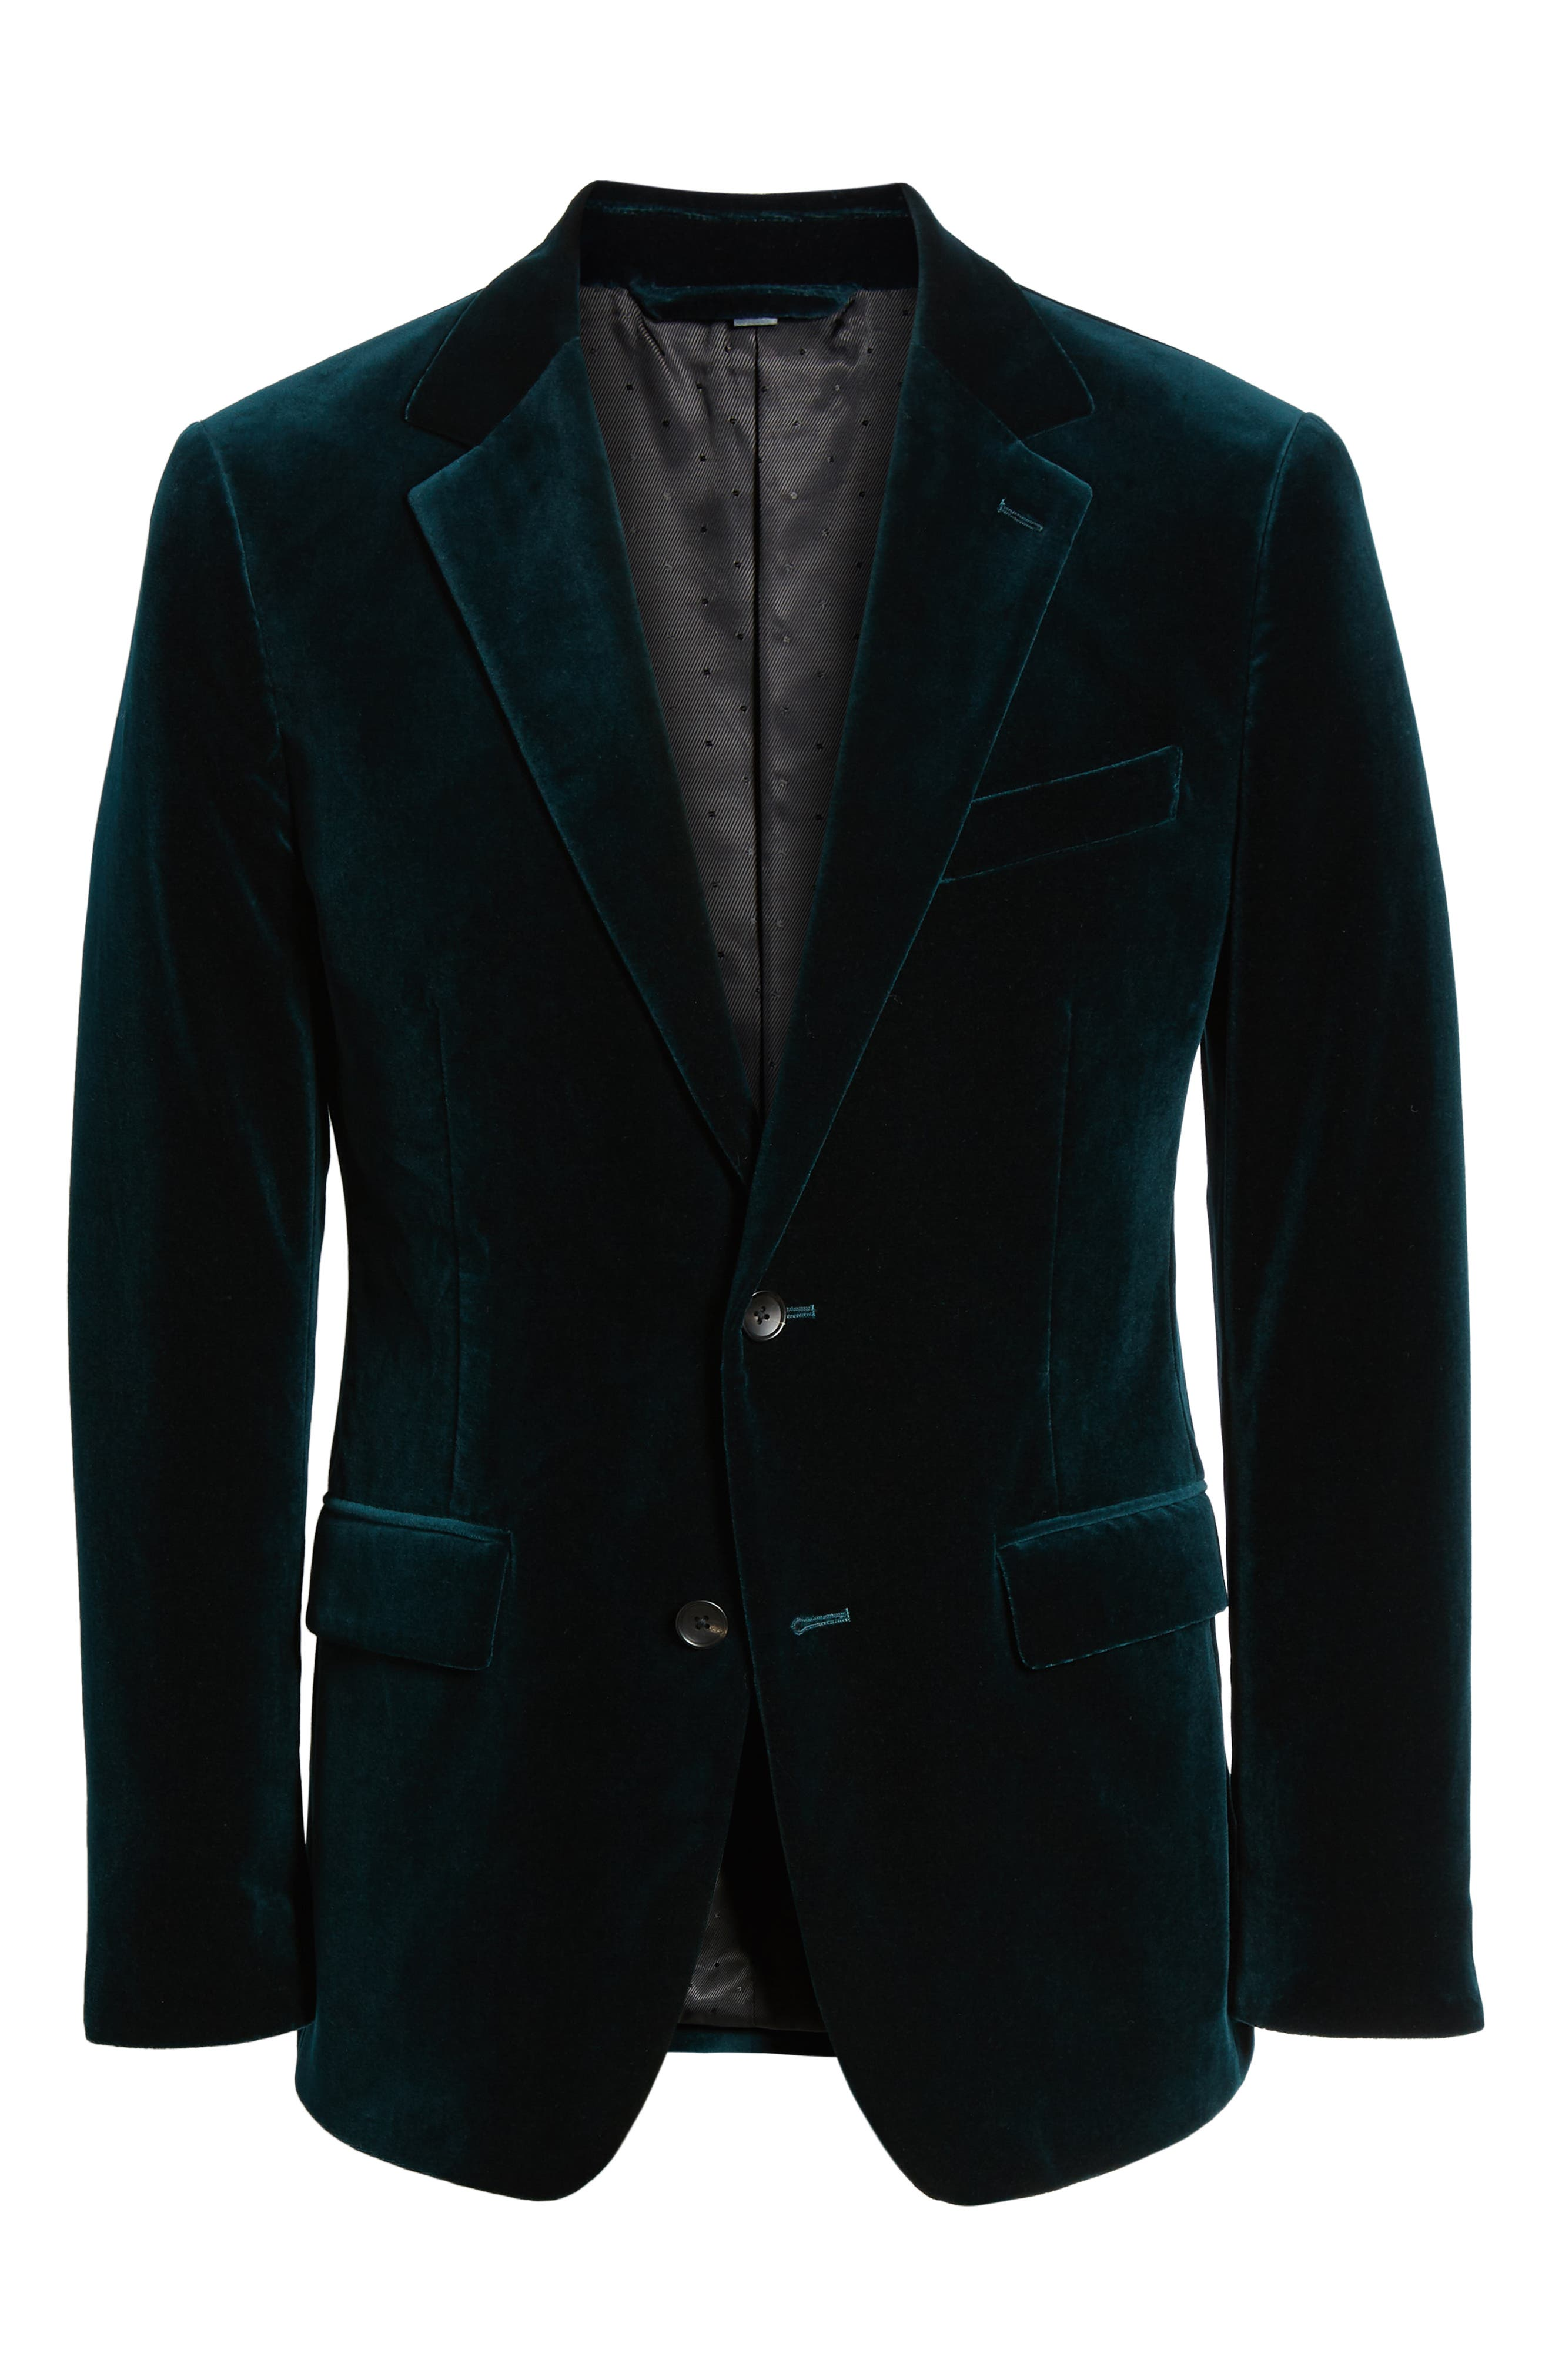 Jetsetter Slim Fit Stretch Velveteen Blazer,                             Alternate thumbnail 5, color,                             SOFT TEAL